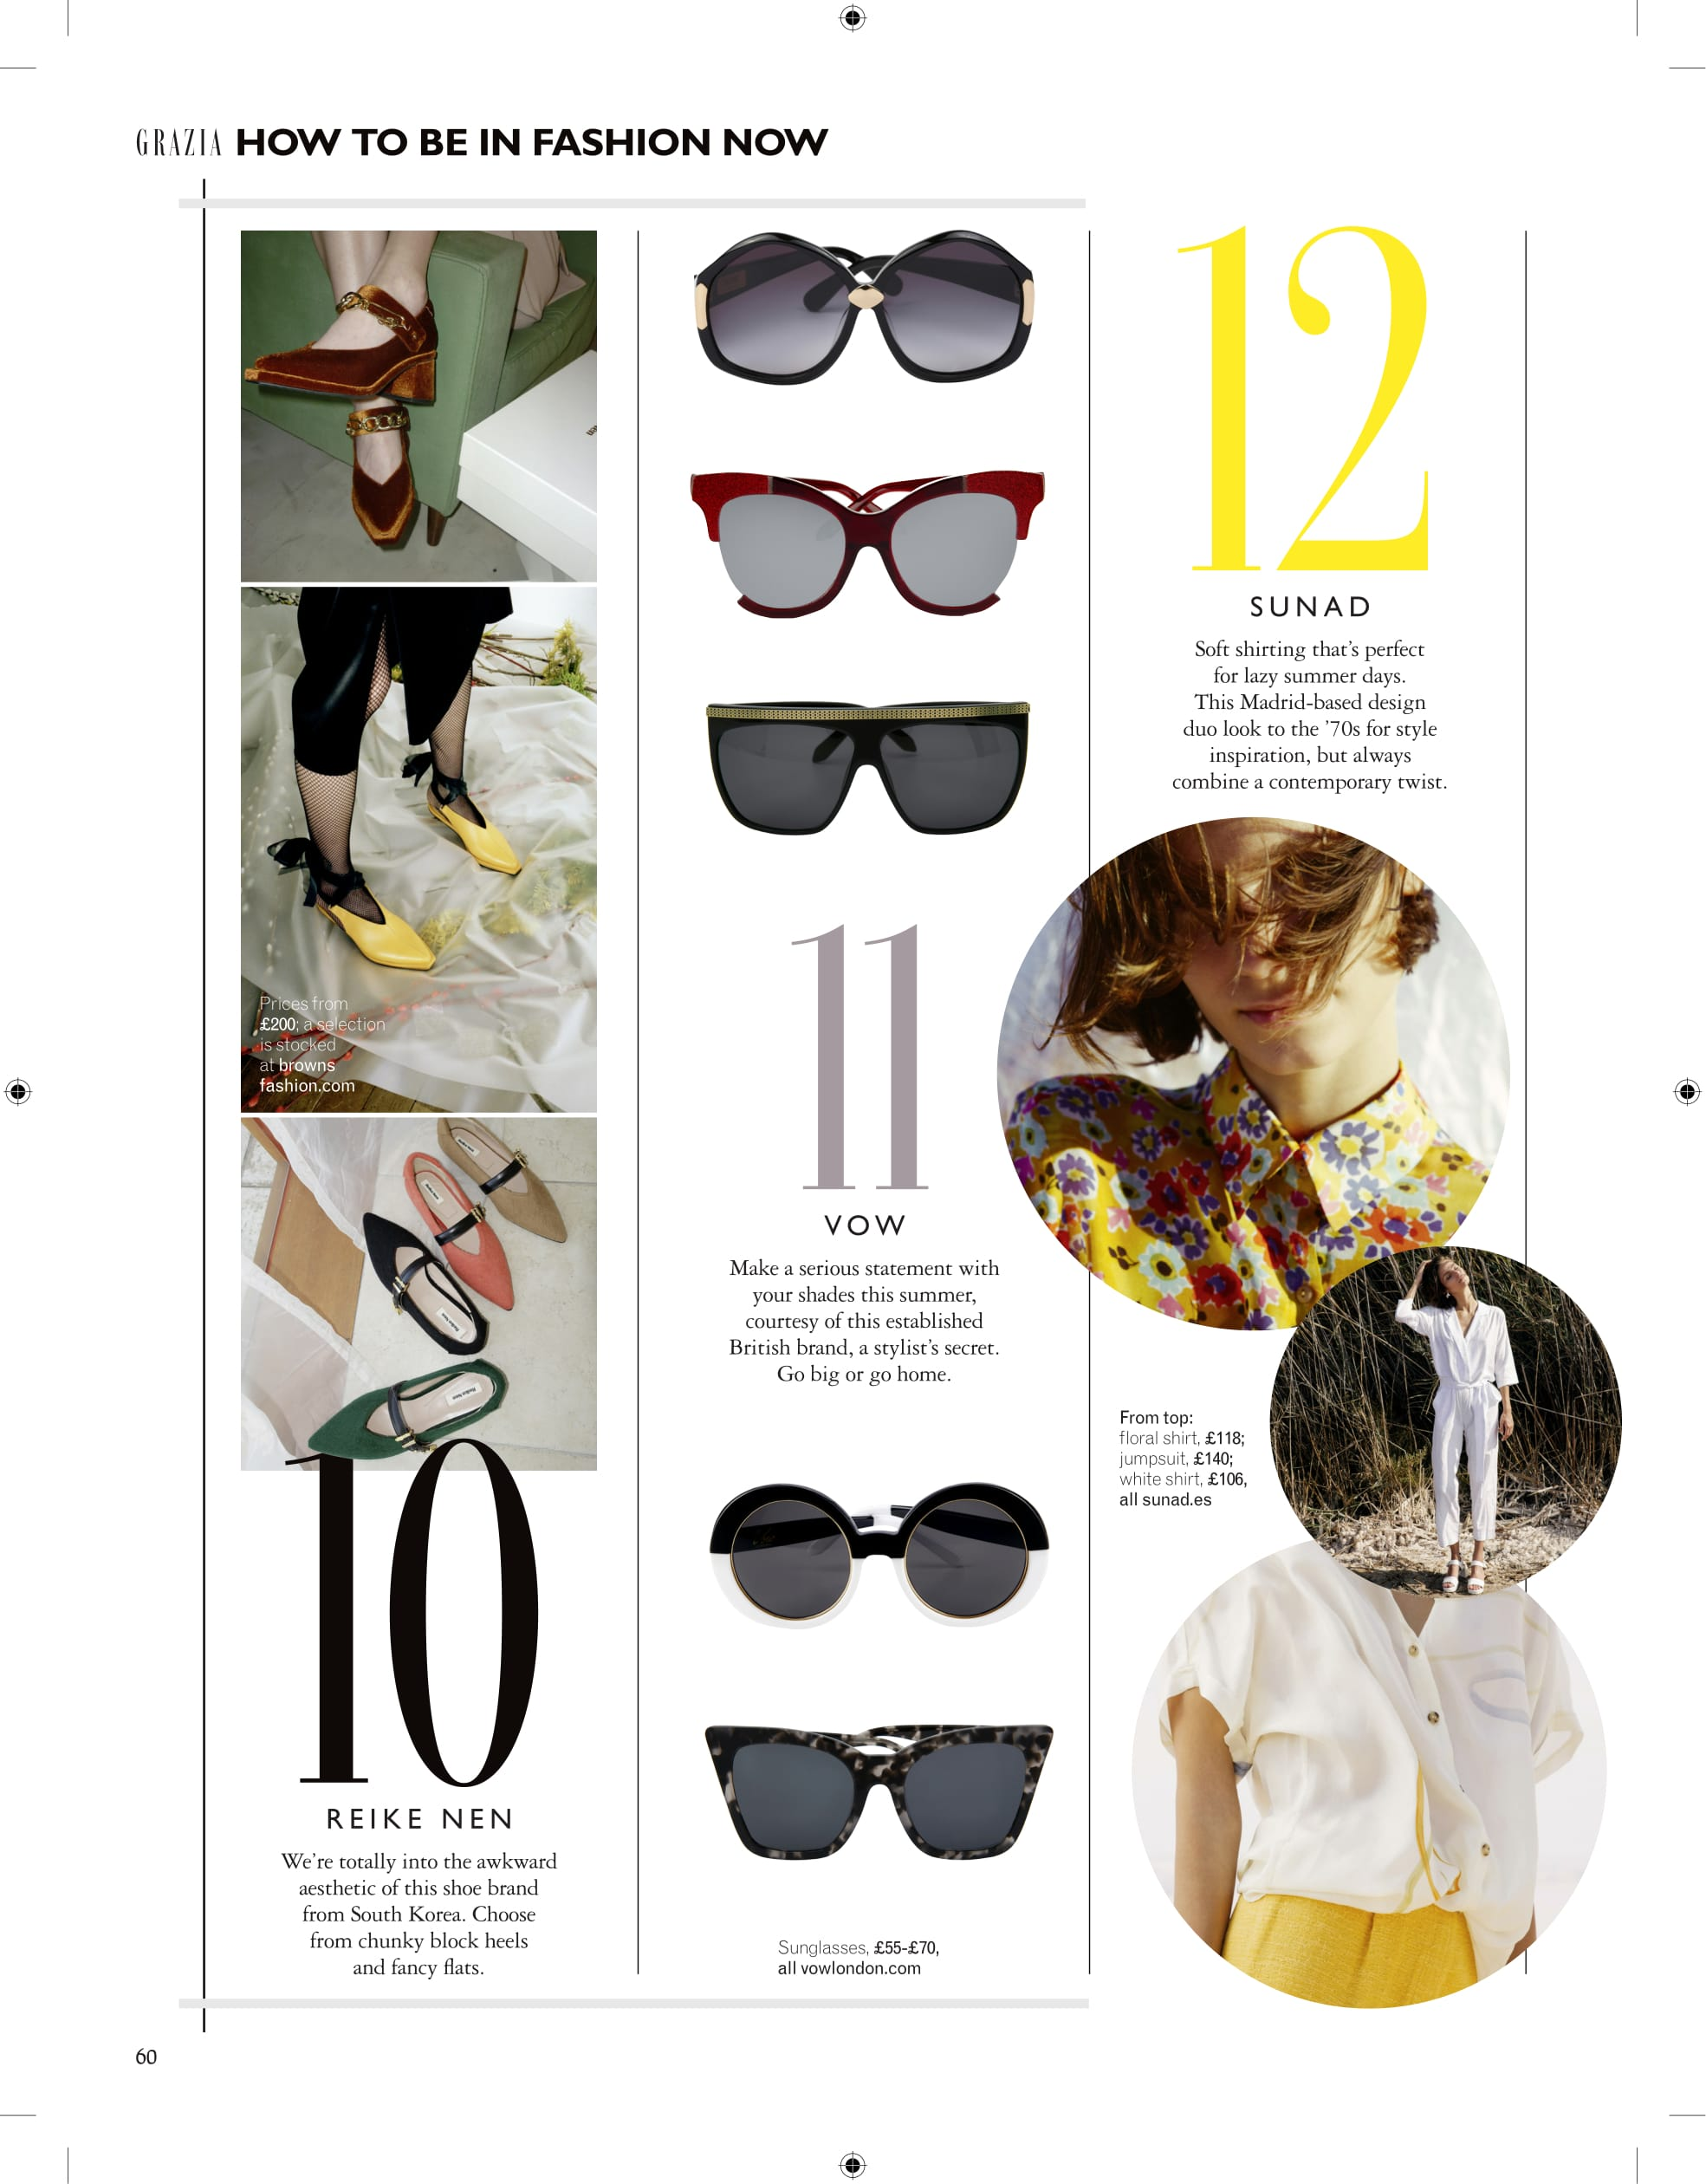 Fashion_Special New Brands to Shop 5pp_pdf_5-1.jpg